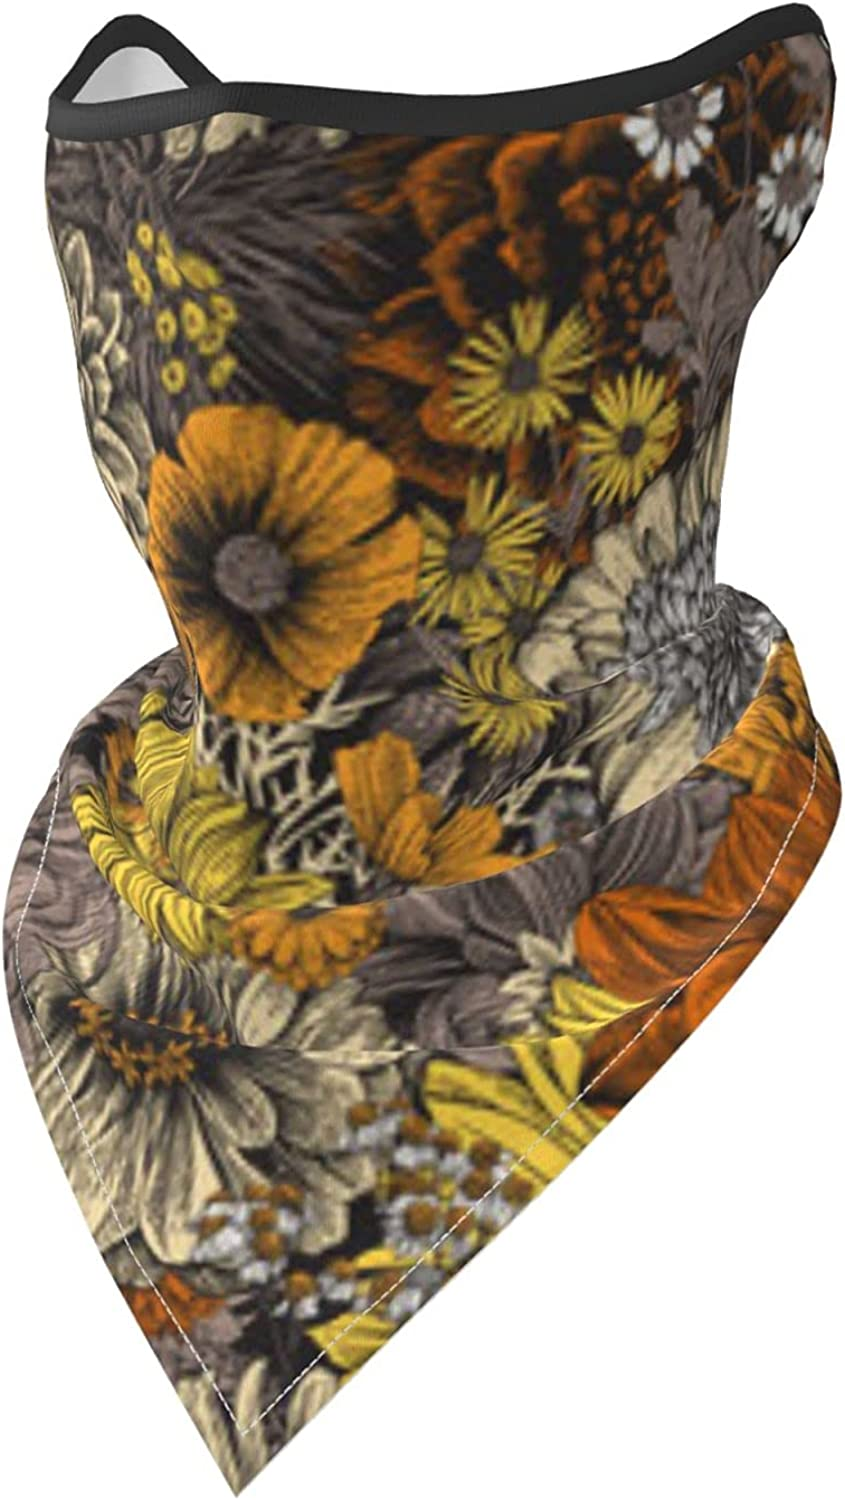 Sunflower and Butterfly-2 Breathable Bandana Face Mask Neck Gaiter Windproof Sports Mask Scarf Headwear for Men Women Outdoor Hiking Cycling Running Motorcycling